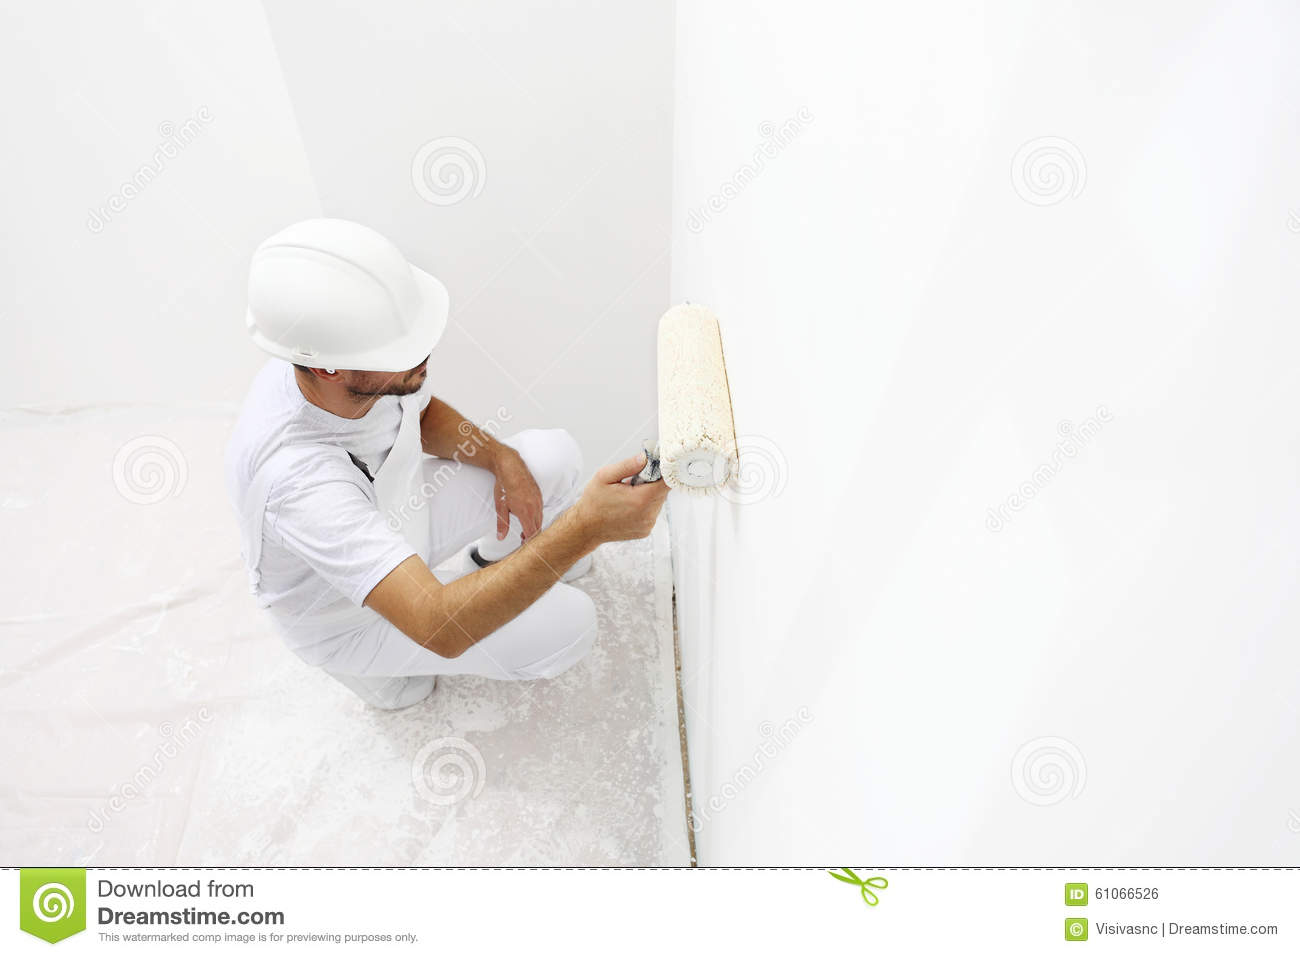 Painter man at work with a paint roller, wall painting